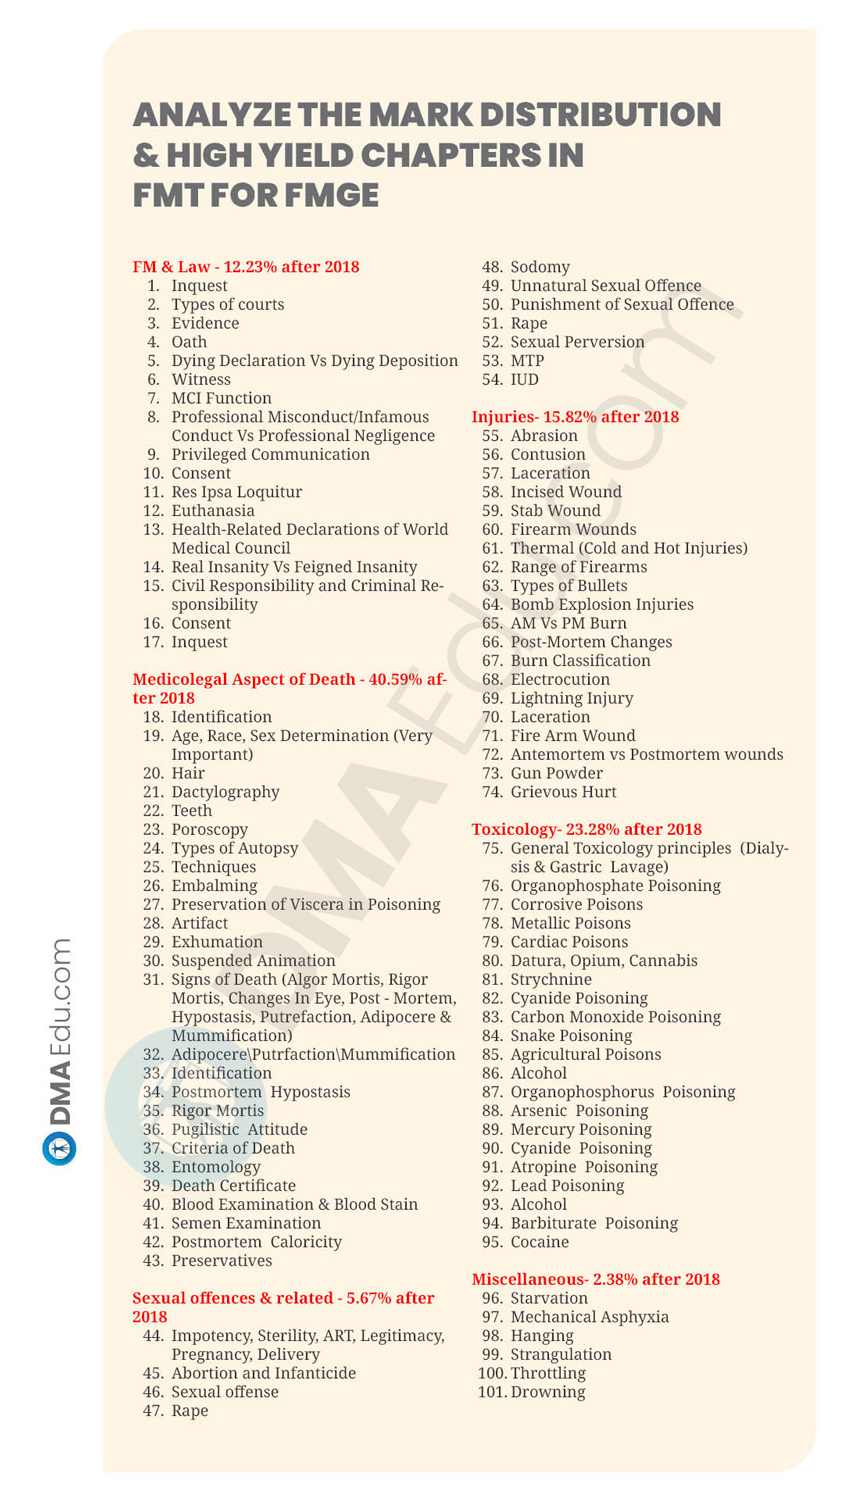 19 SUBJECTS HIGH YILD CHAPTER15 How to Prepare Forensic Medicine (FMT) for FMGE 2021? FMGE, FMGE preparation, FMGE Study Plan, FMGE Tips